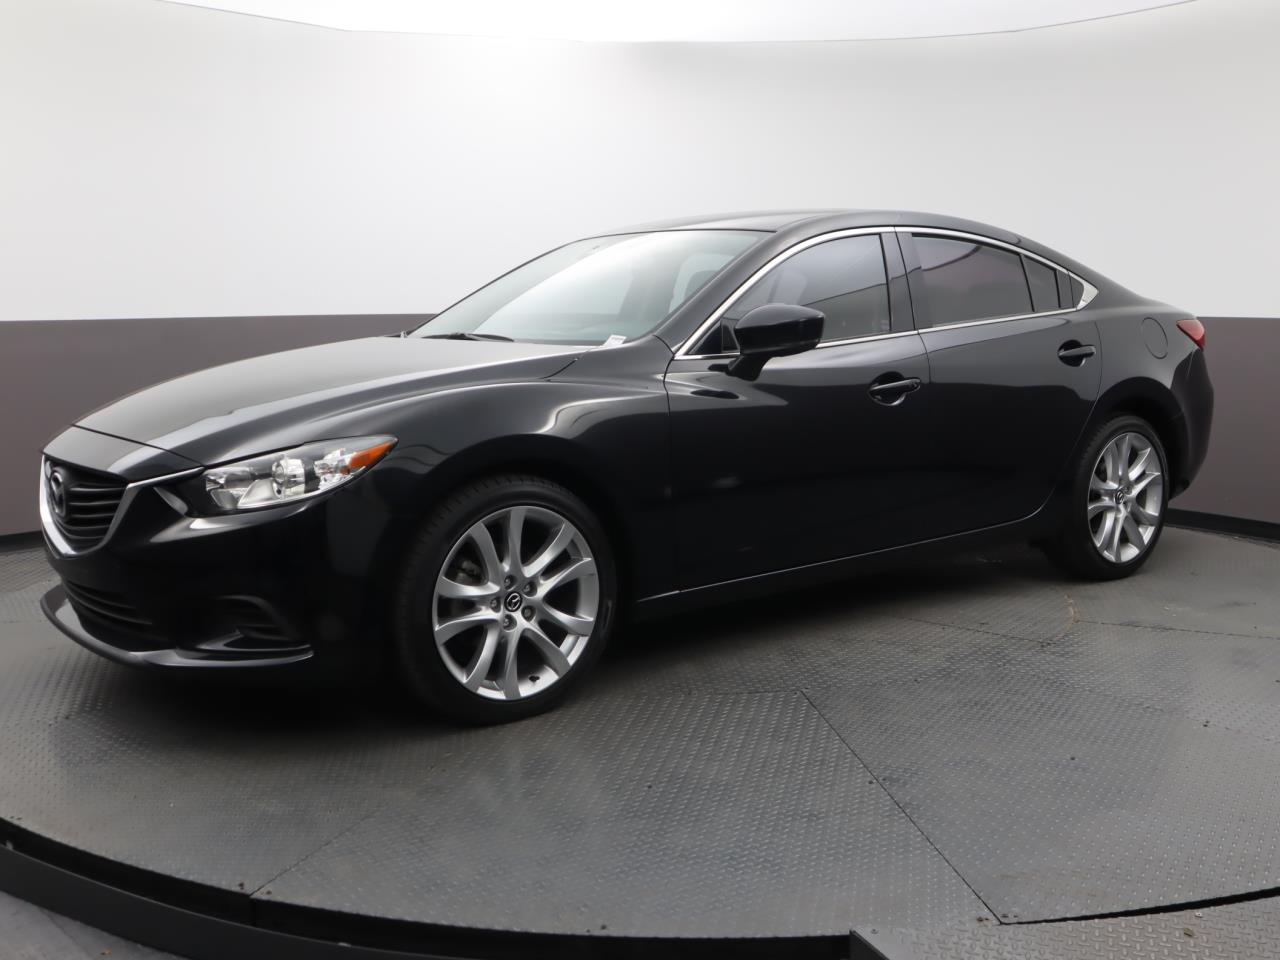 Used MAZDA MAZDA6 2017 MIAMI TOURING